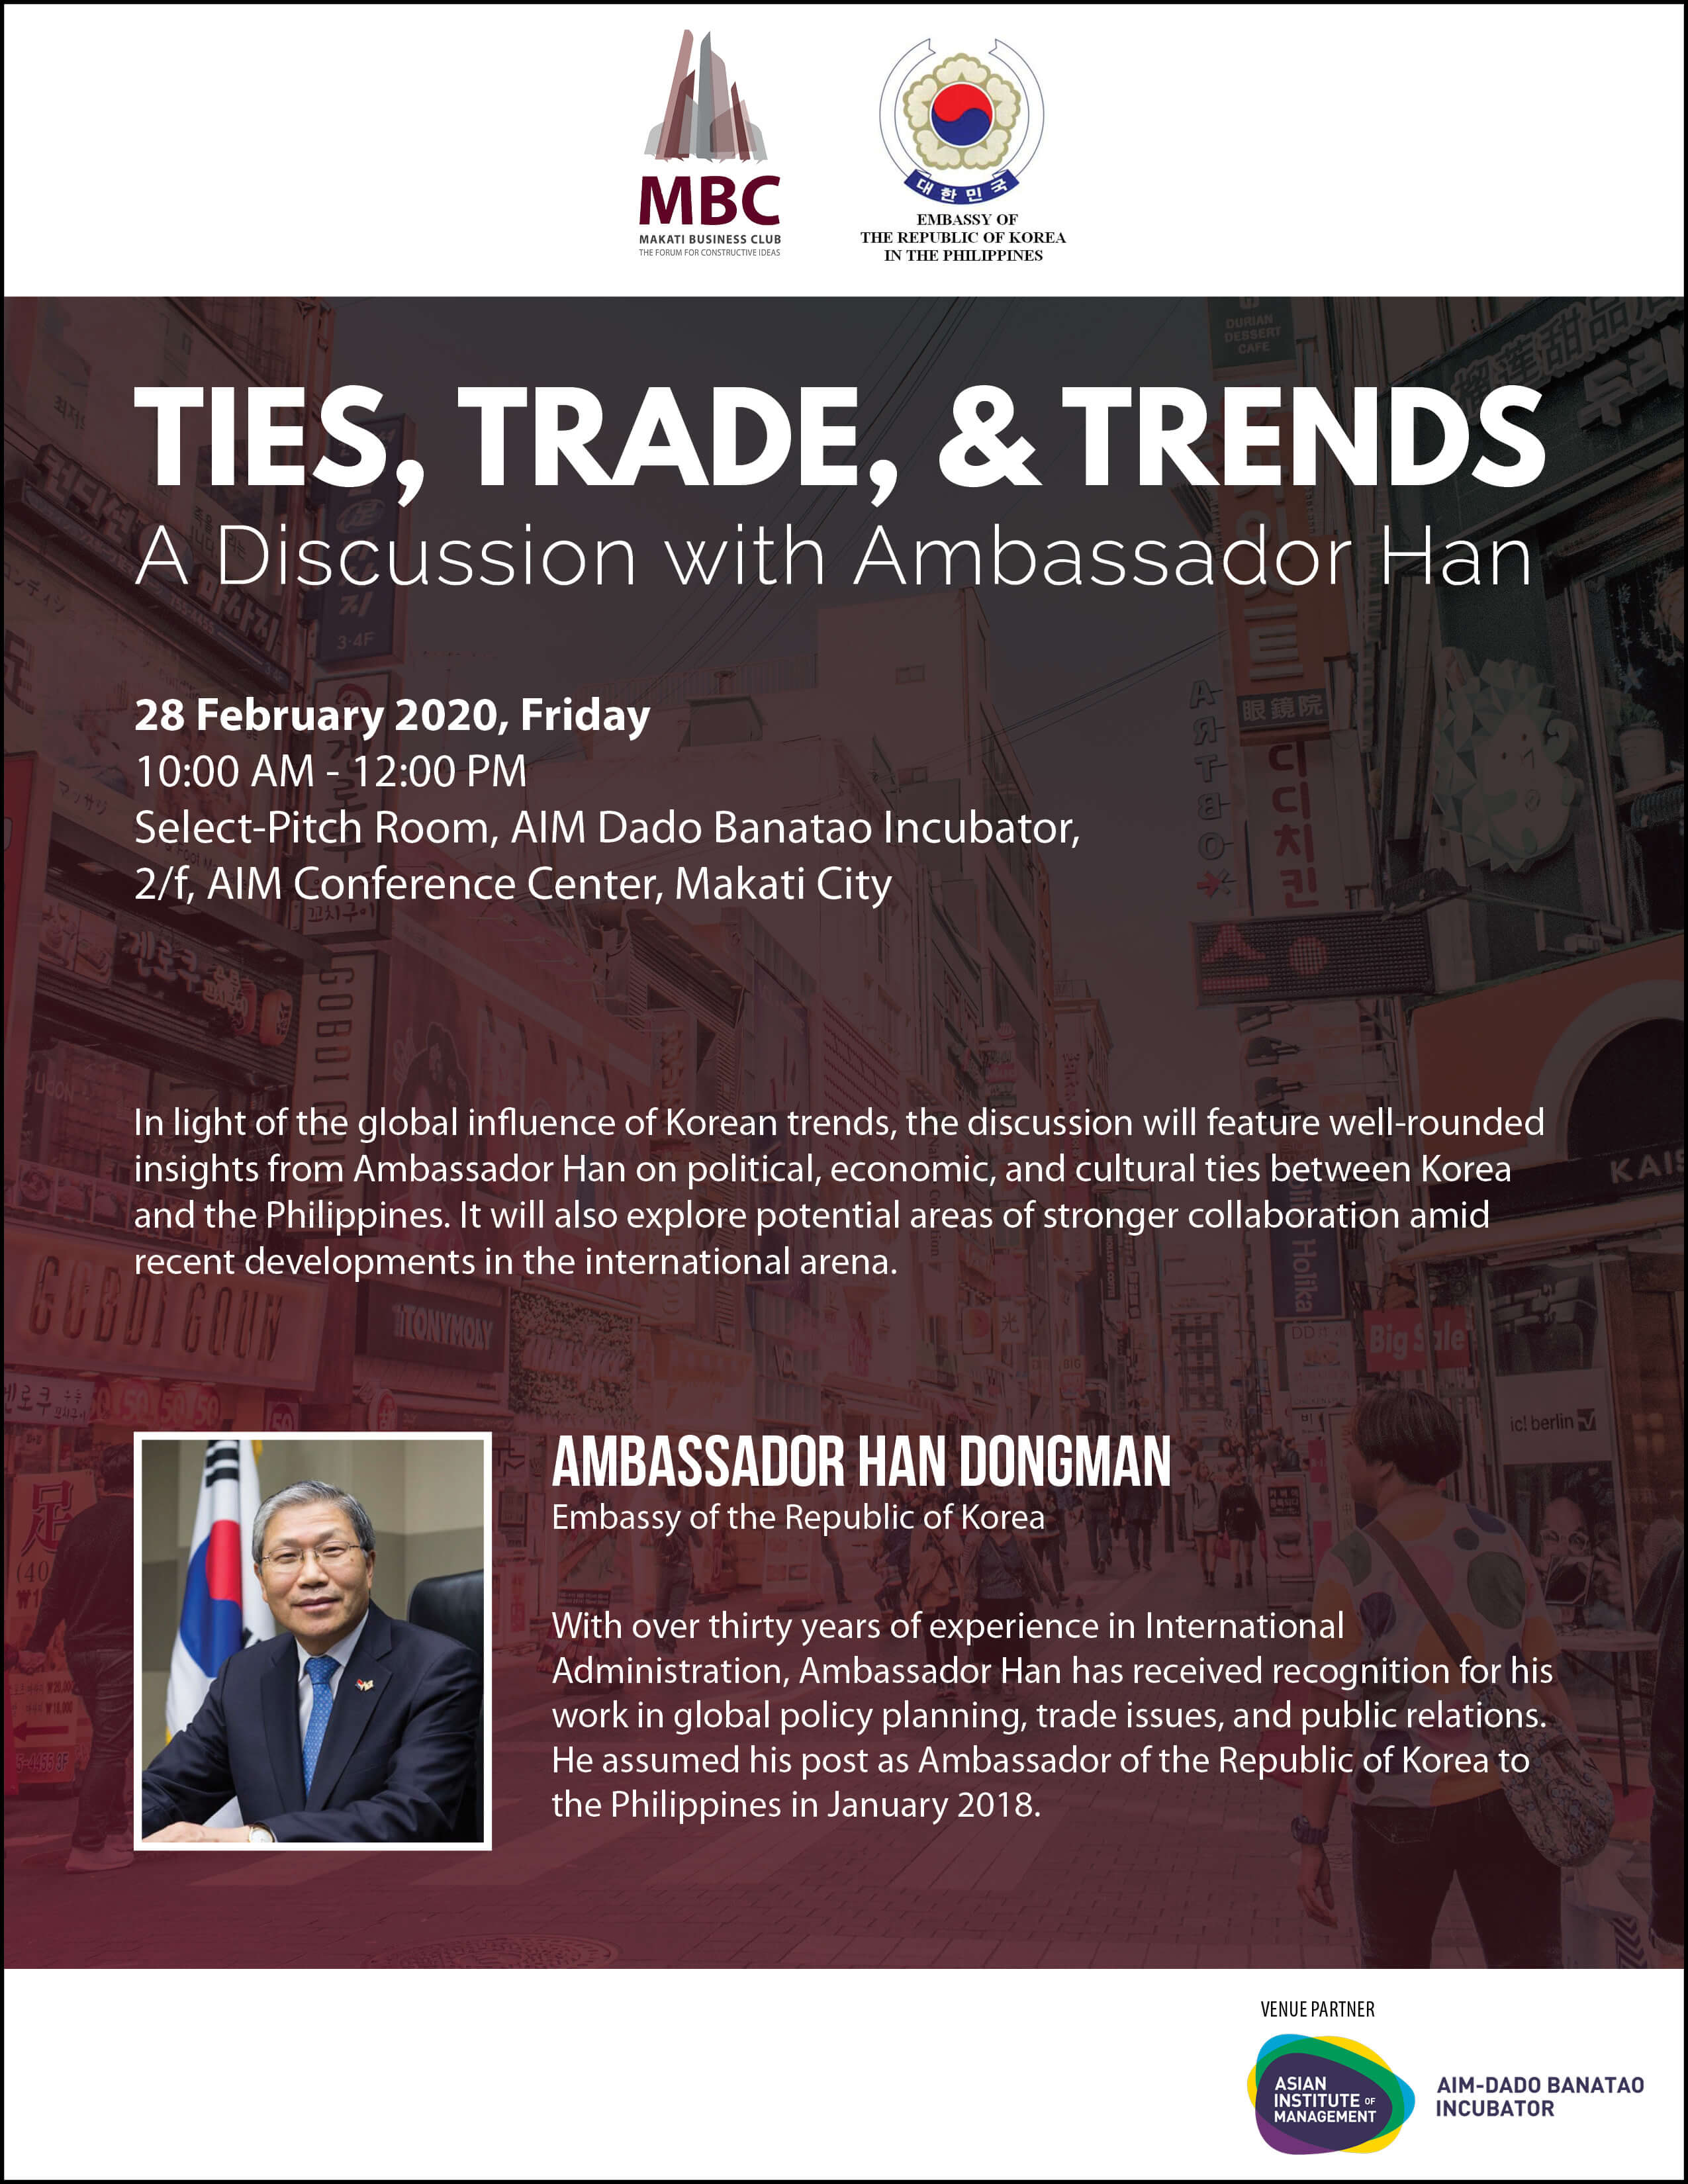 Ties, Trade, & Trends: A Roundtable Discussion with Ambassador Han Dongman